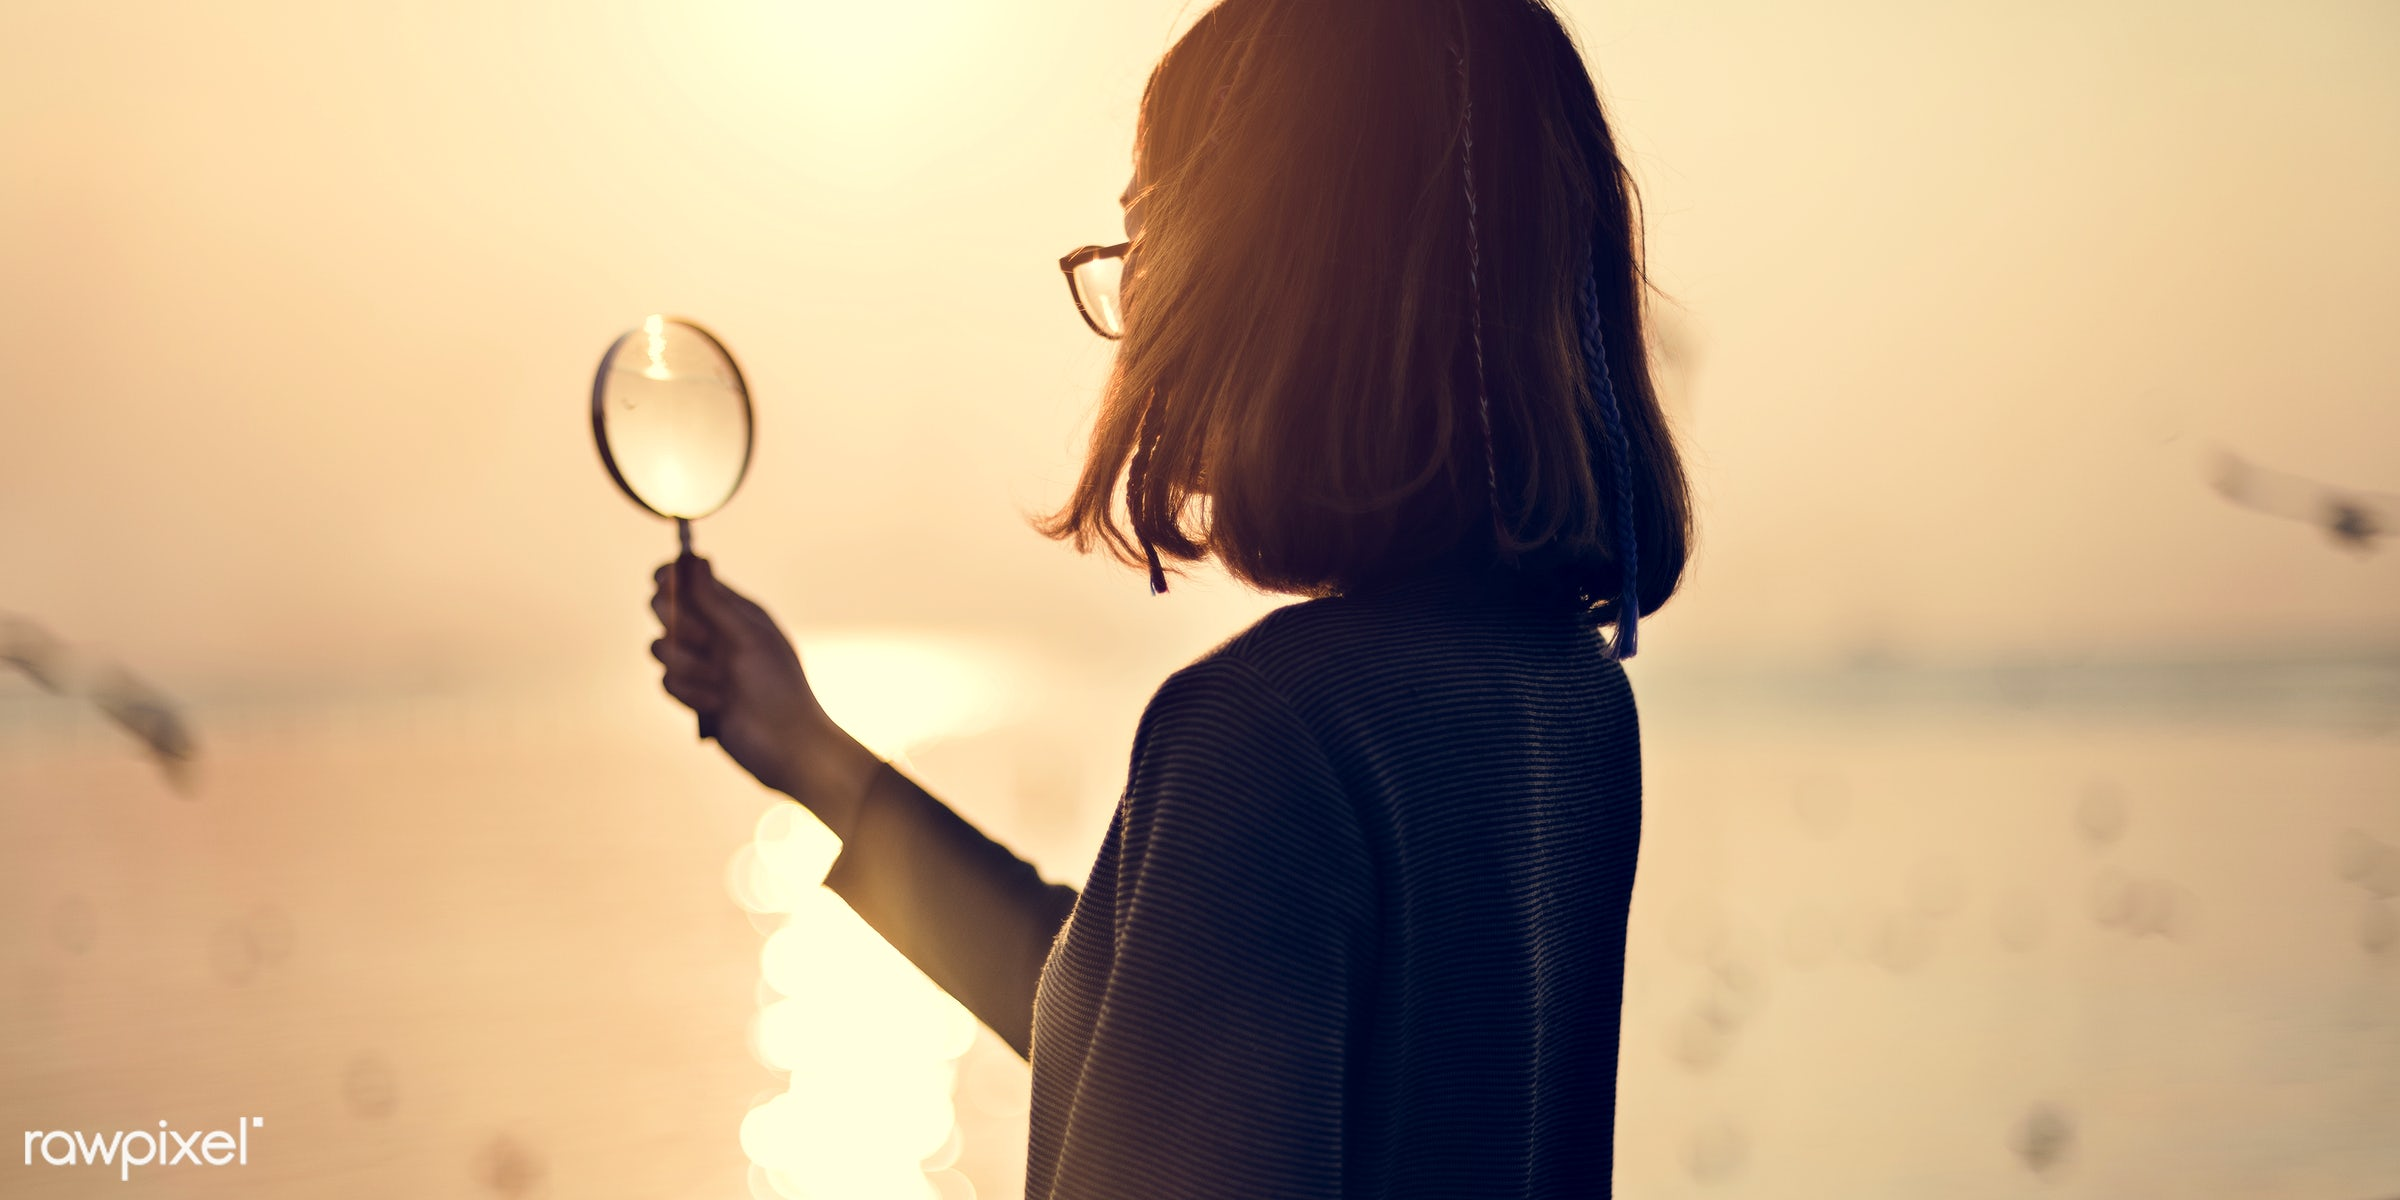 girl, woman, holding, magnifying, glass, silhouette, sunset, nature, sky, ocean, sea, water, studying, looking, person